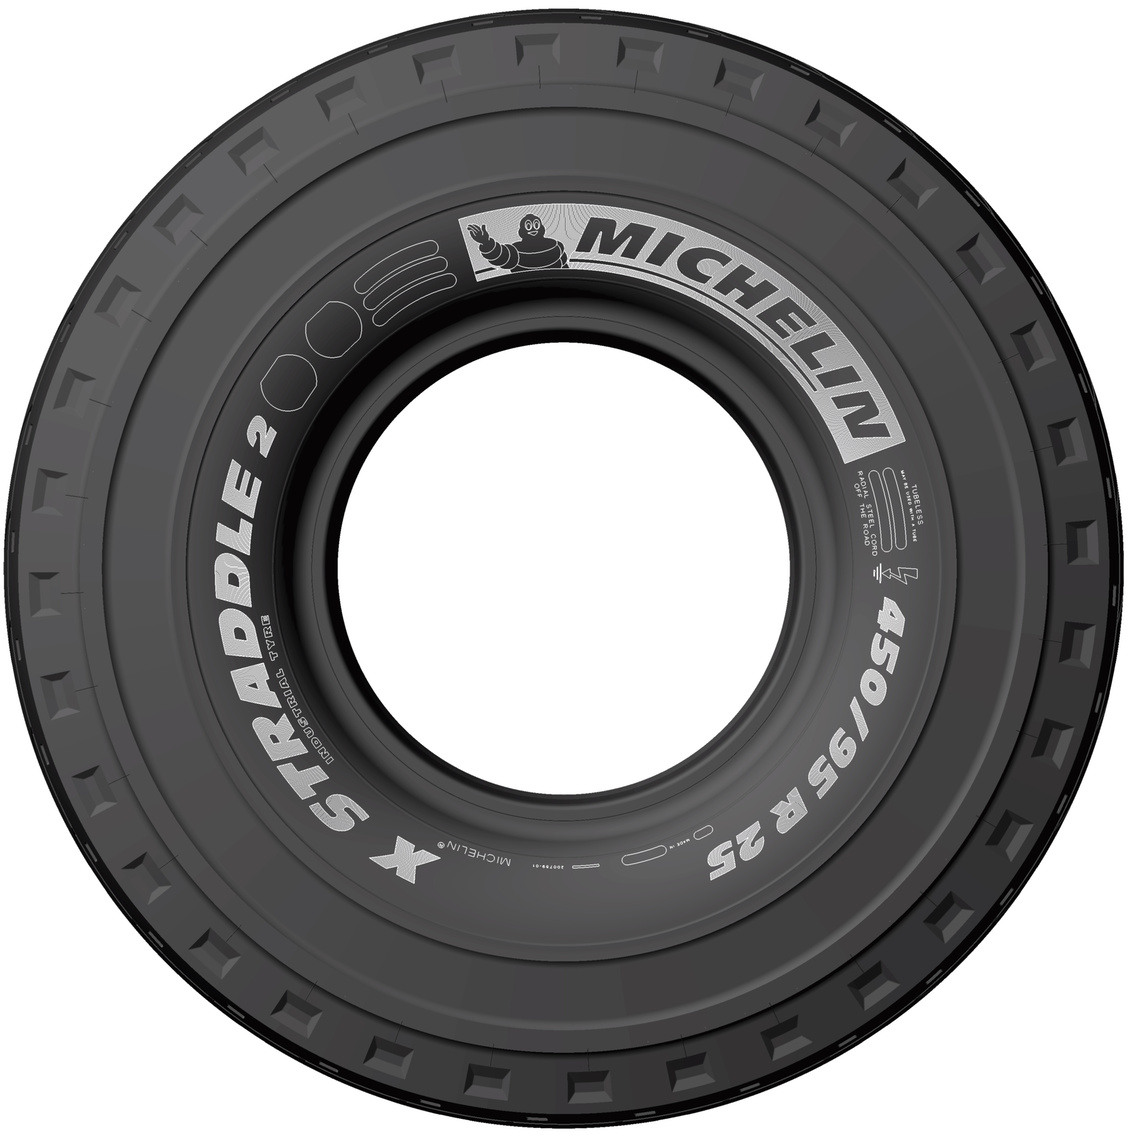 MICHELIN X-STRADDLE 2 450/95 R25 Front